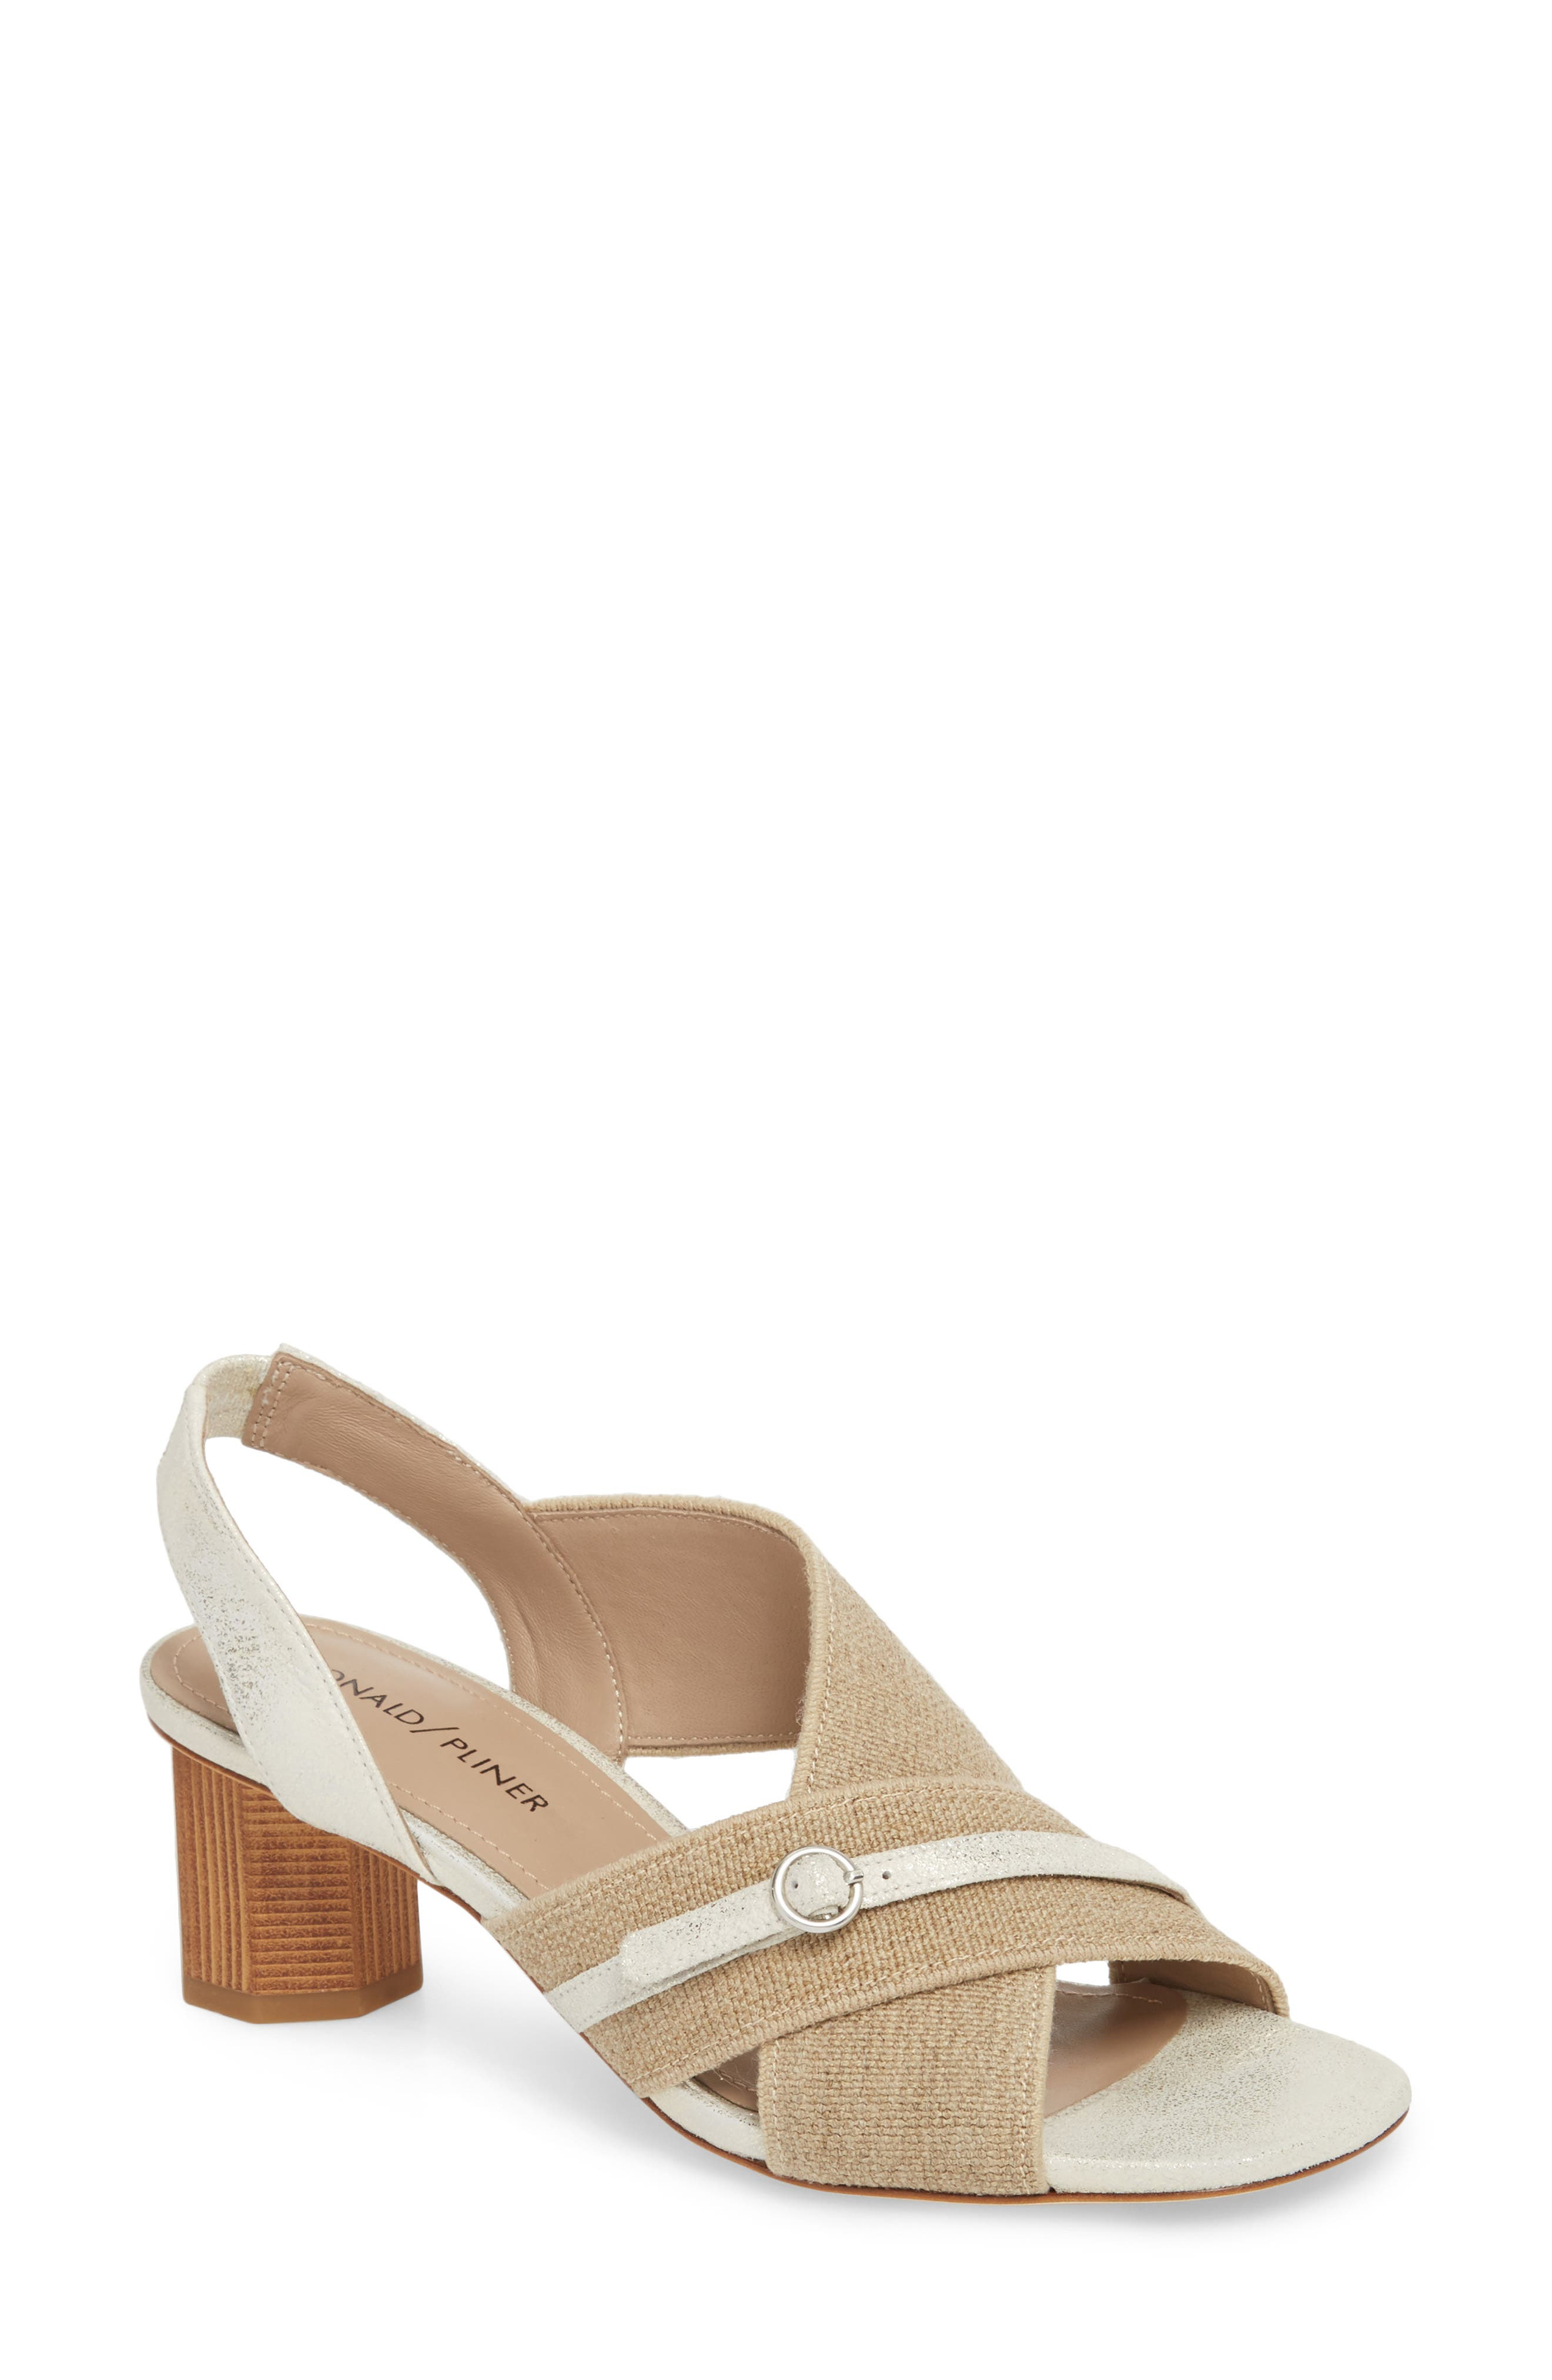 Radly Strappy Sandal,                             Main thumbnail 1, color,                             250